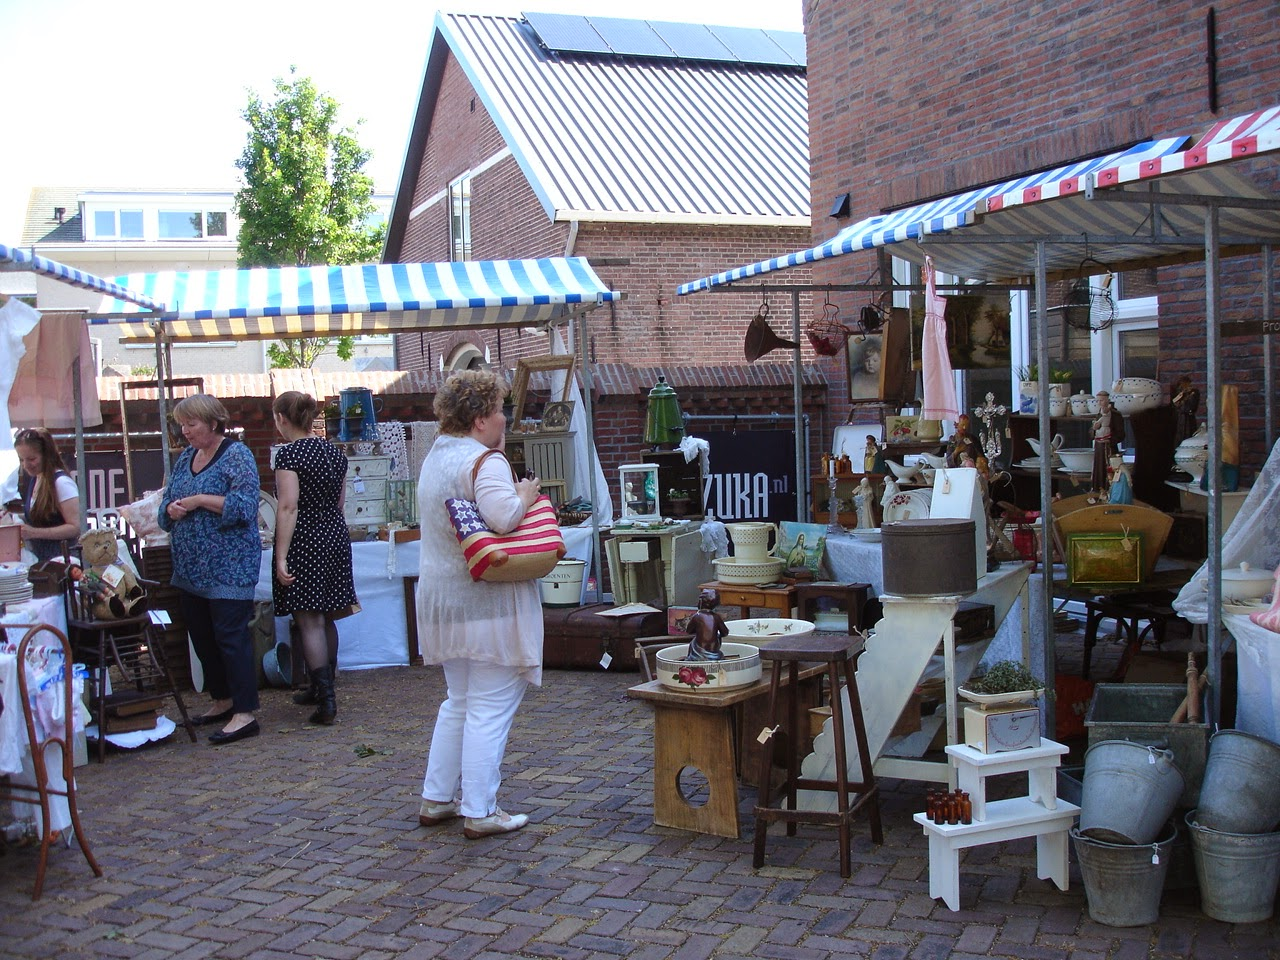 Möbel In Holland Brocante -charmante: Spontanausflug Nach Holland